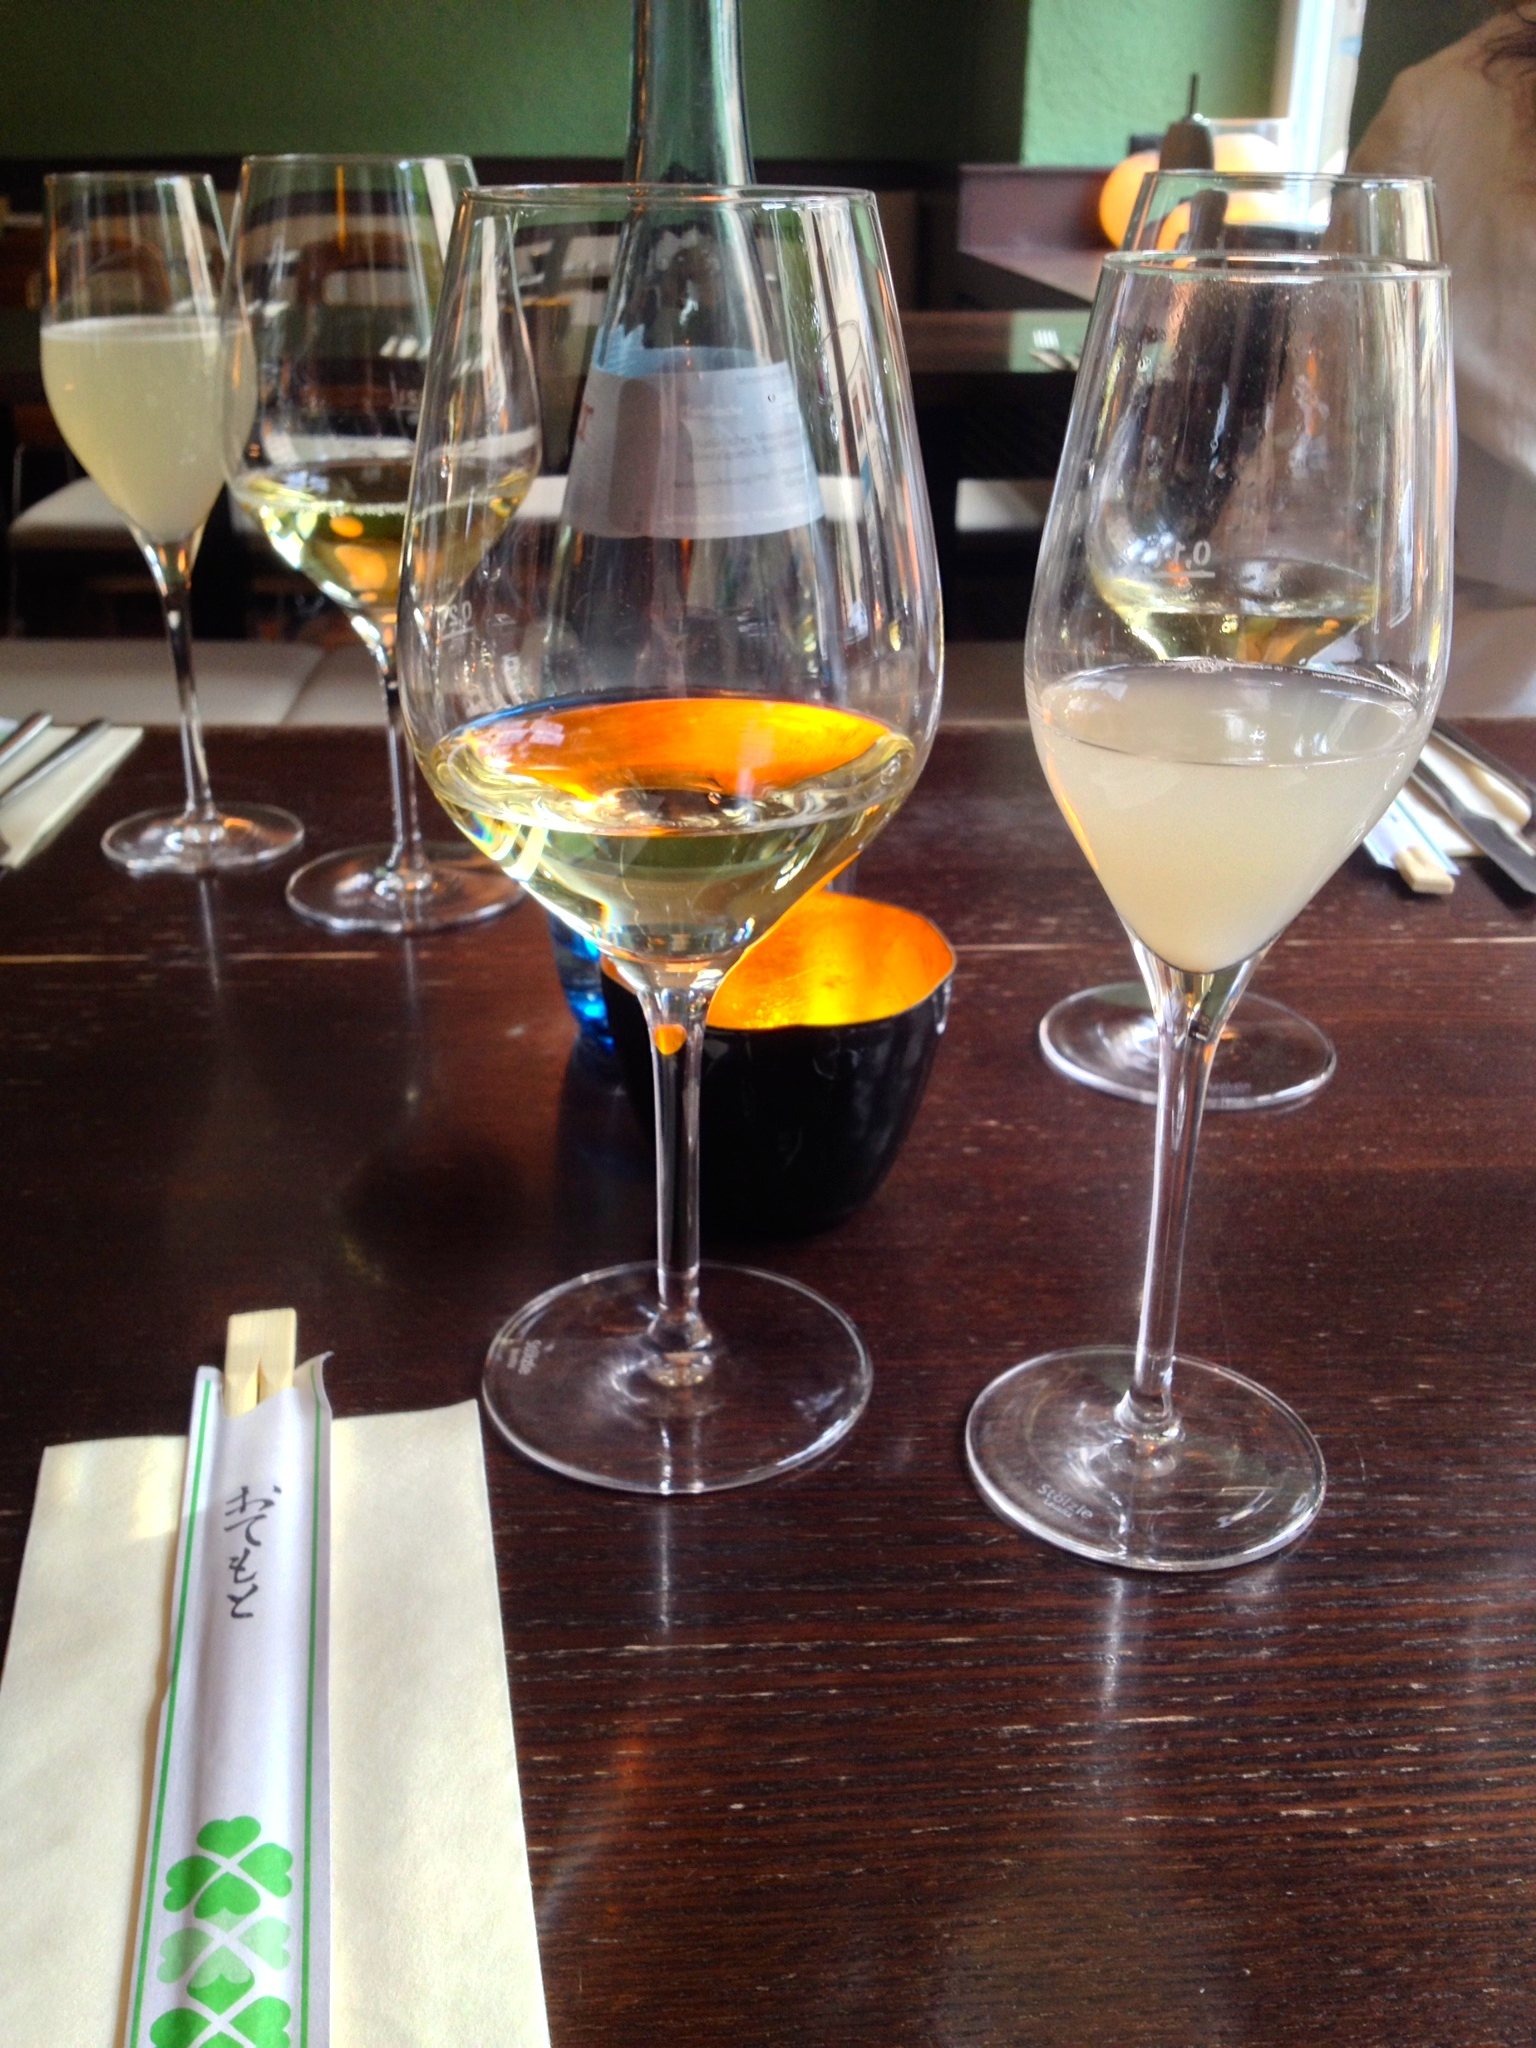 Prosseco Lychee cocktail (right) and a glass of the Weingut Kiefer Grauburgunder (left)